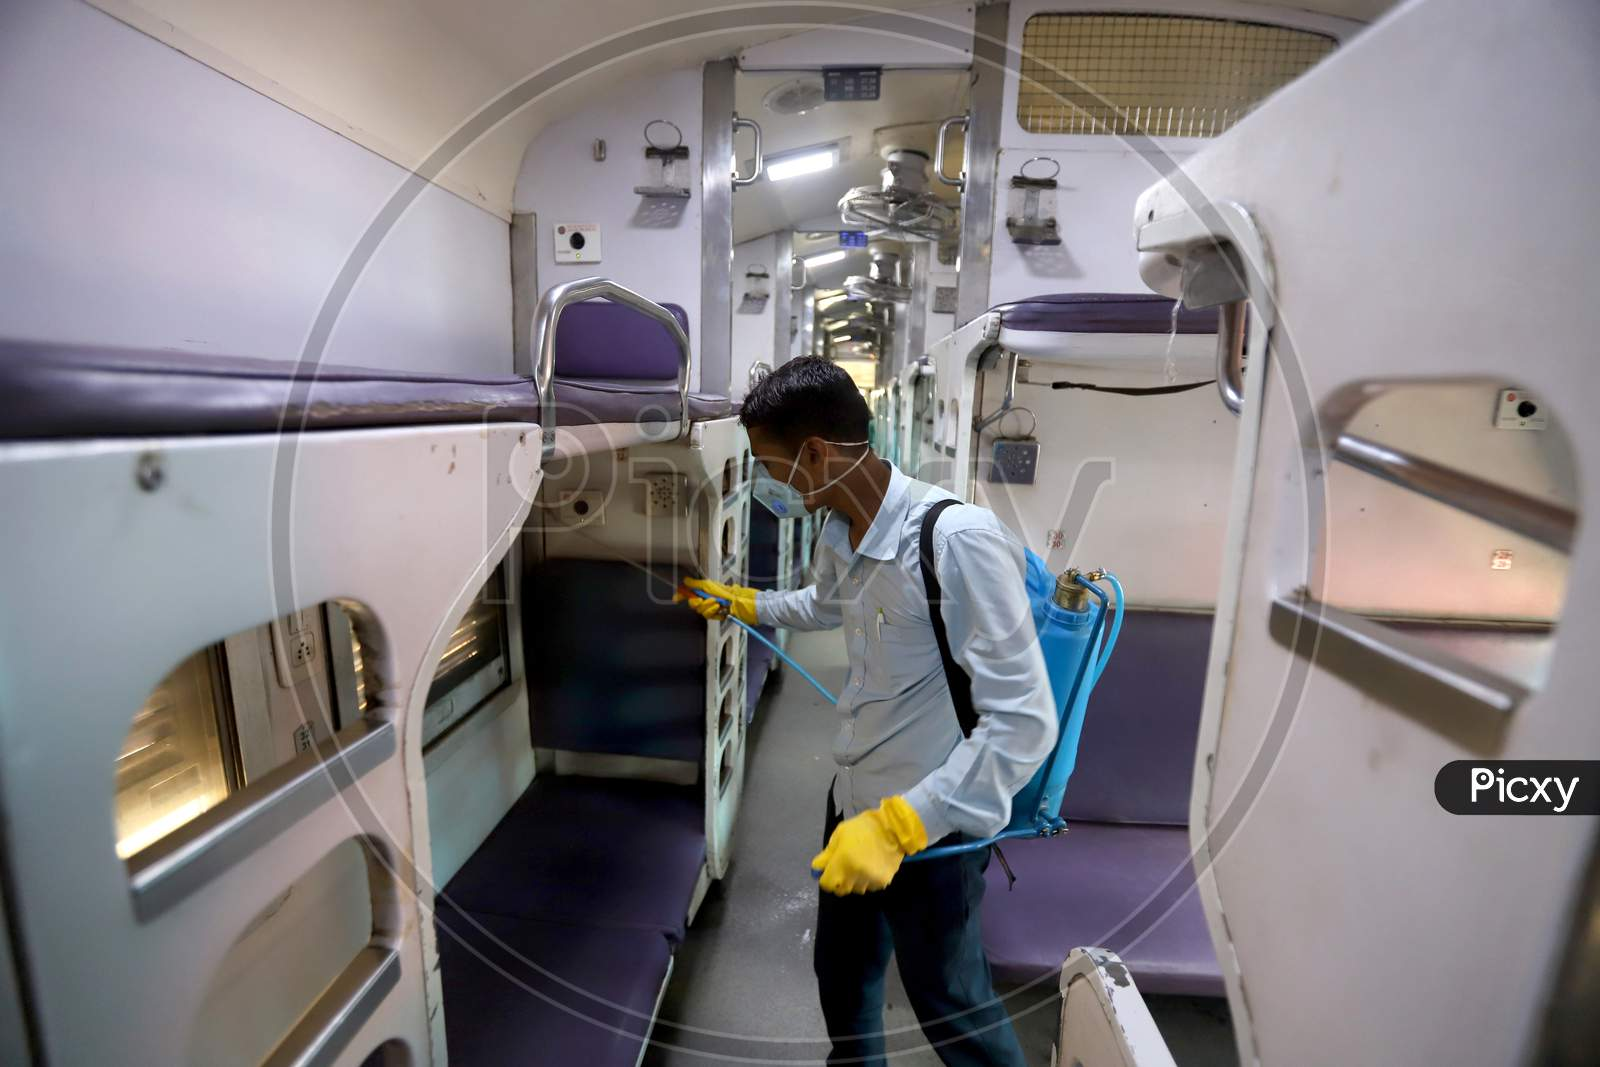 Delhi Metro Started Sanitation Drives As A Preventive Measure Against The Covid-19 Novel Coronavirus Walks Out Of A Metro Station In New Delhi On March 13, 2020.